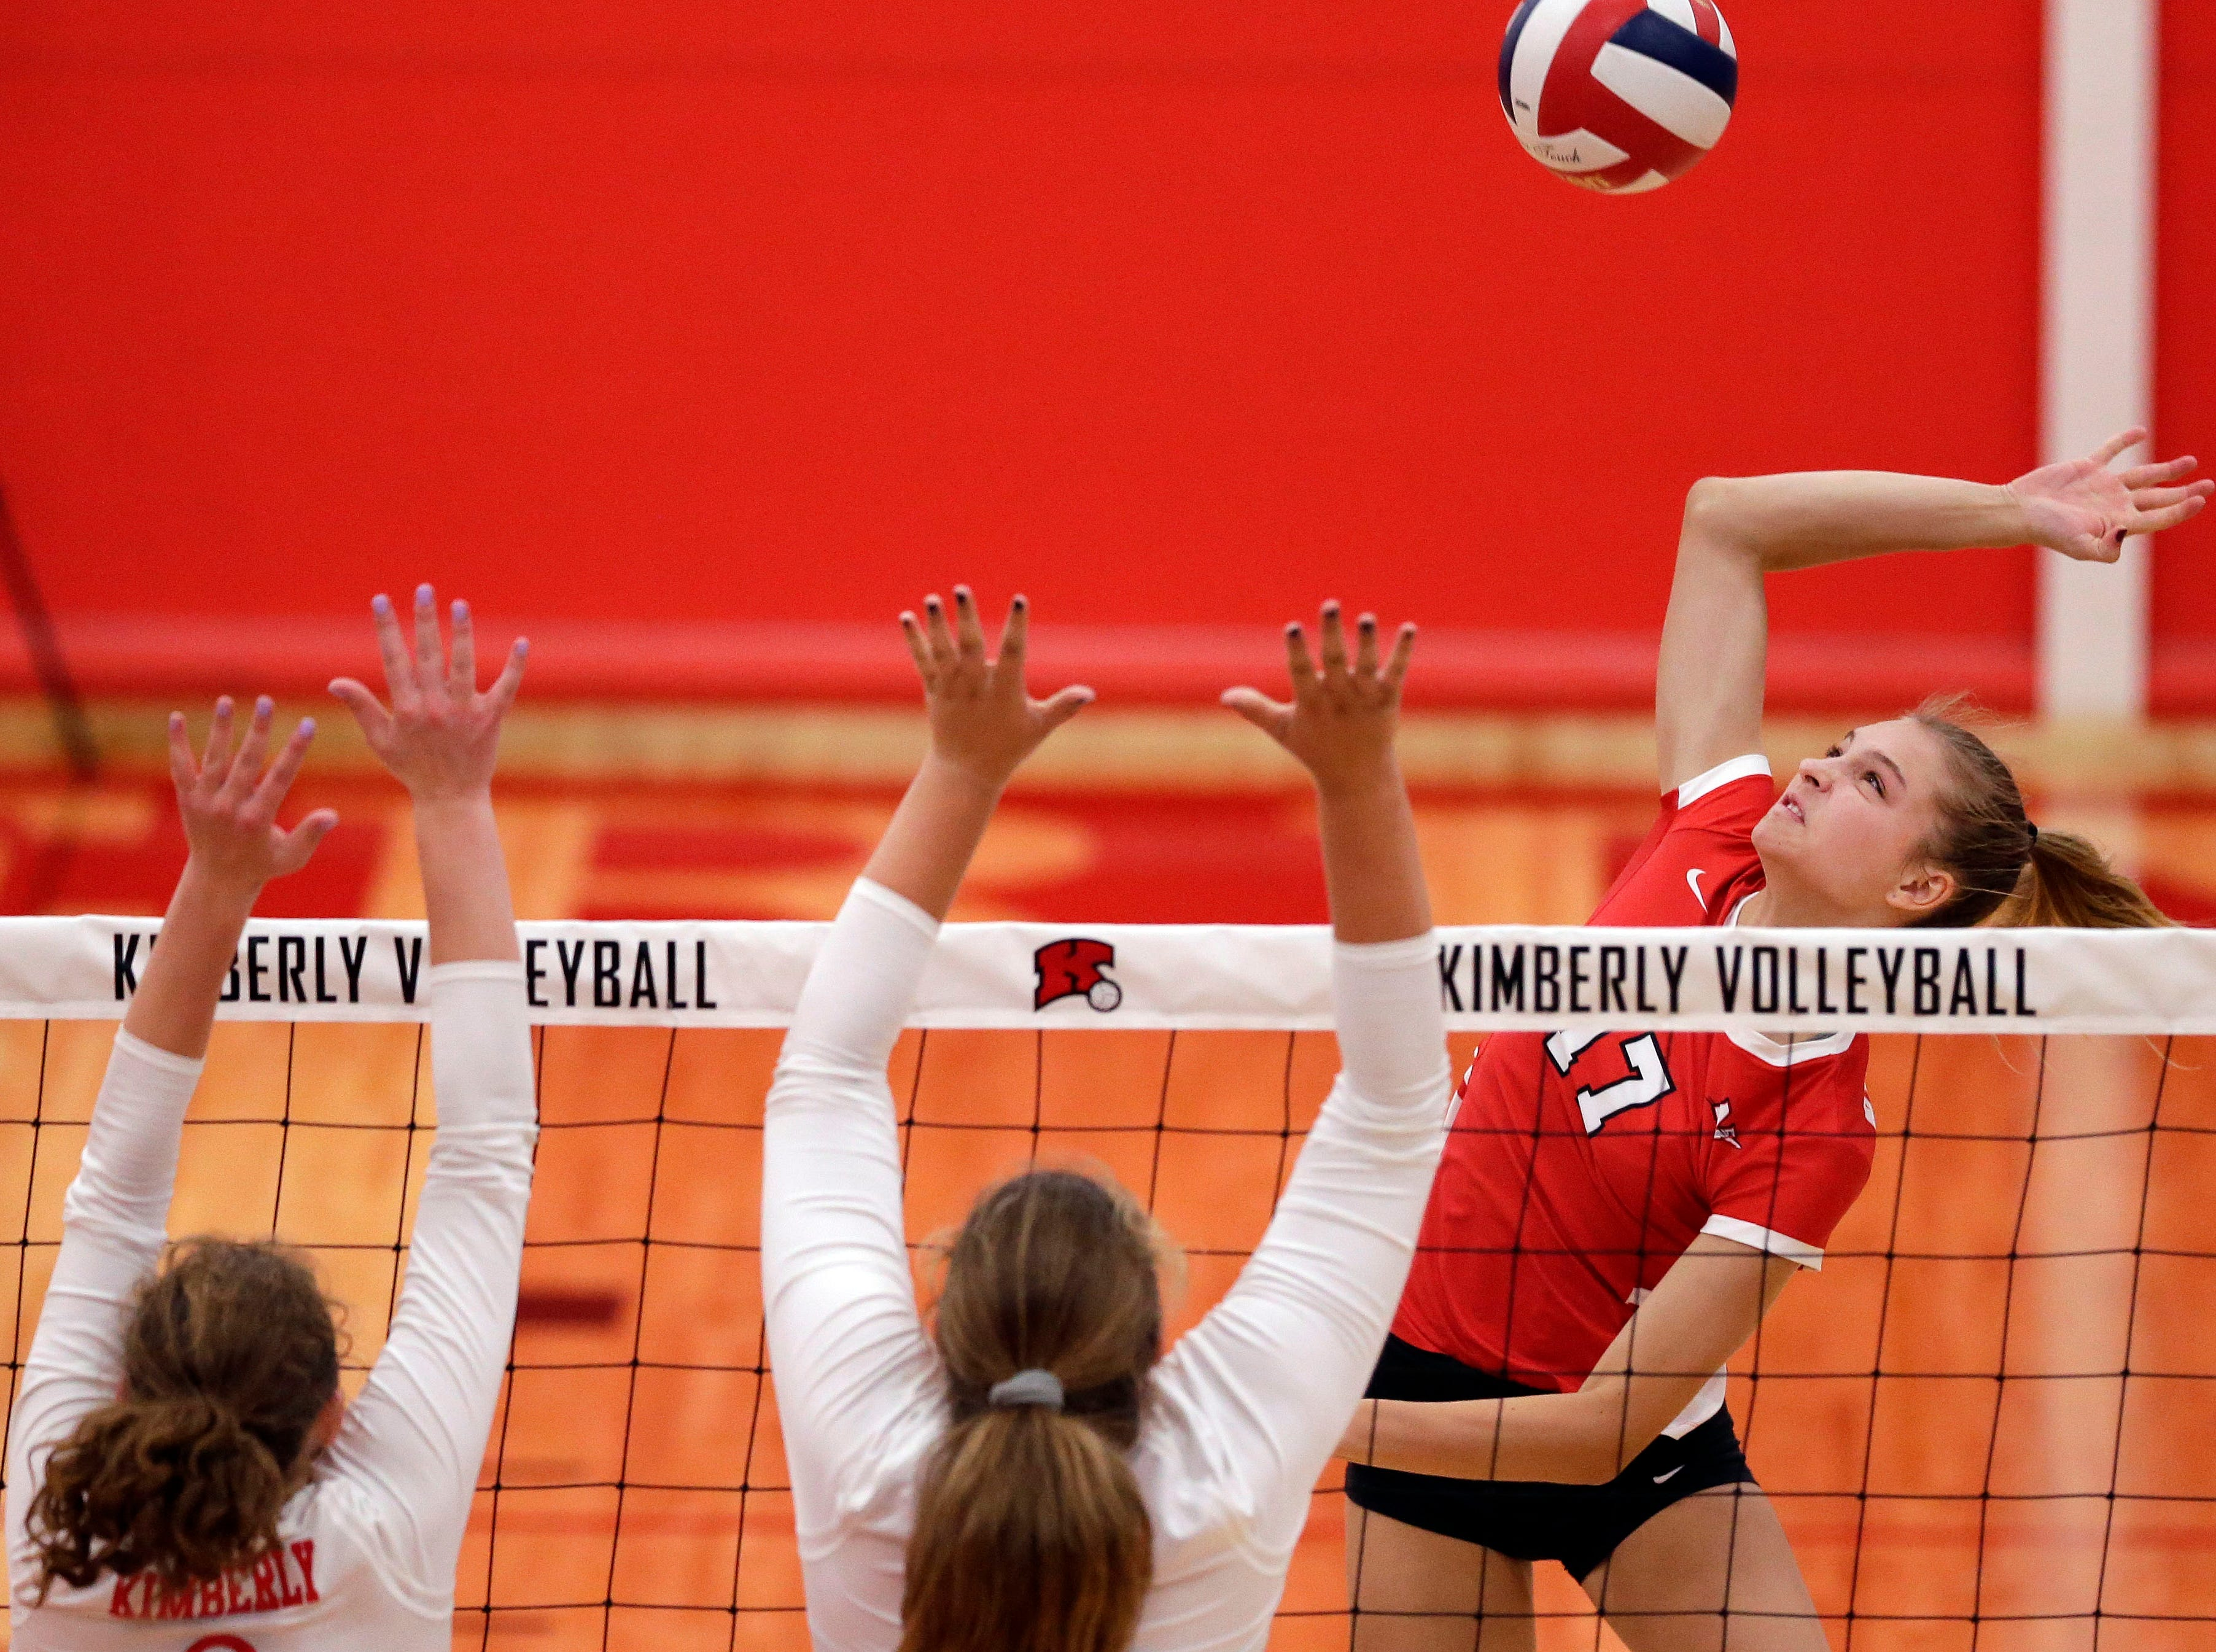 Ava Aldag of Neenah hits against Kimberly in FVA girls volleyball Tuesday, September 11, 2018, at Kimberly High School in Kimberly, Wis.Ron Page/USA TODAY NETWORK-Wisconsin